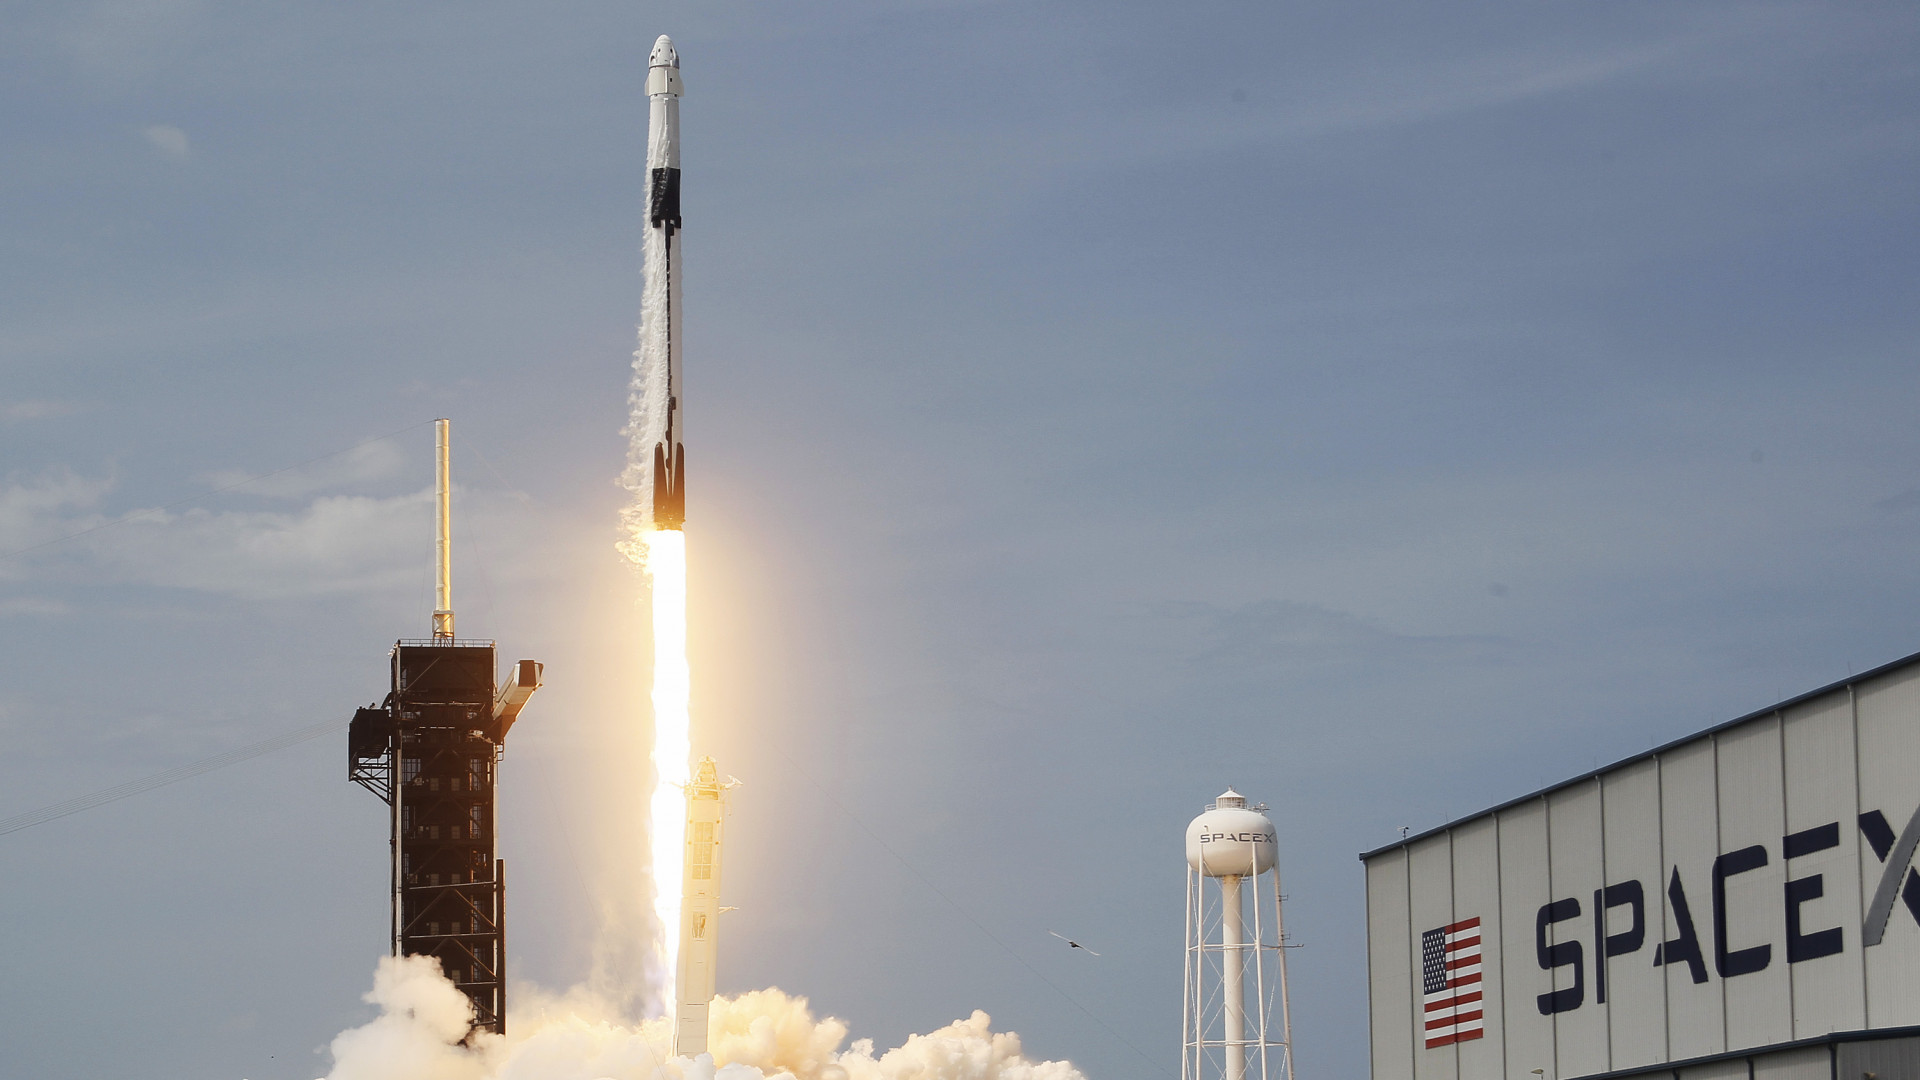 SpaceX has made a historic launch